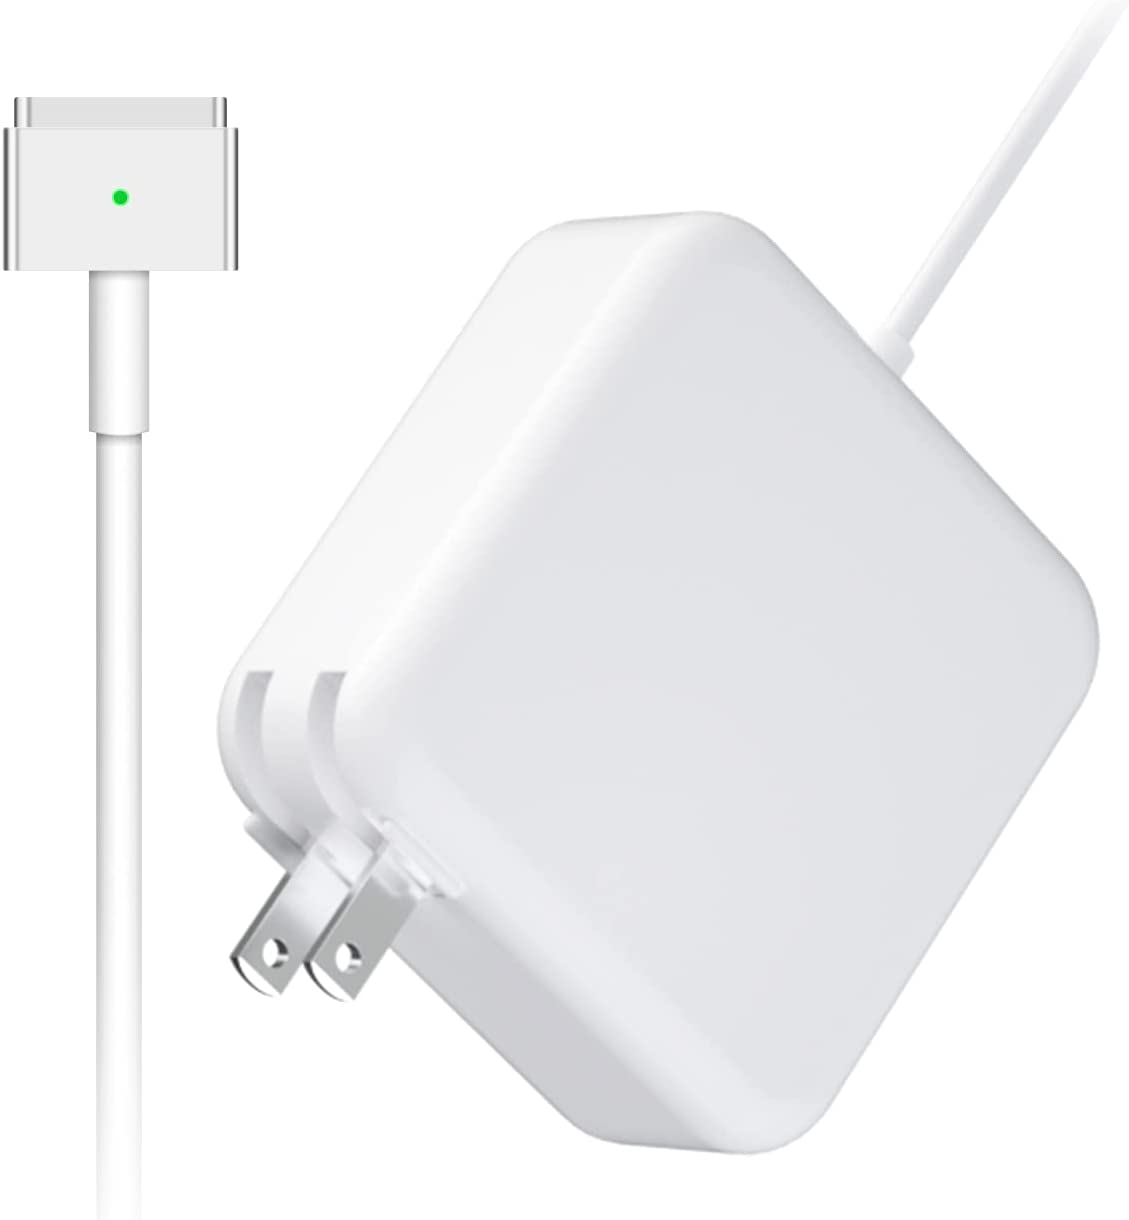 NSPENCM MacBook Pro Charger,Replacement AC 85w T-Tip Magnetic Connector Power Adapter,Laptop Charger for MacBook pro & Mac Book Air 13/15/17 inch Retina After Mid 2012